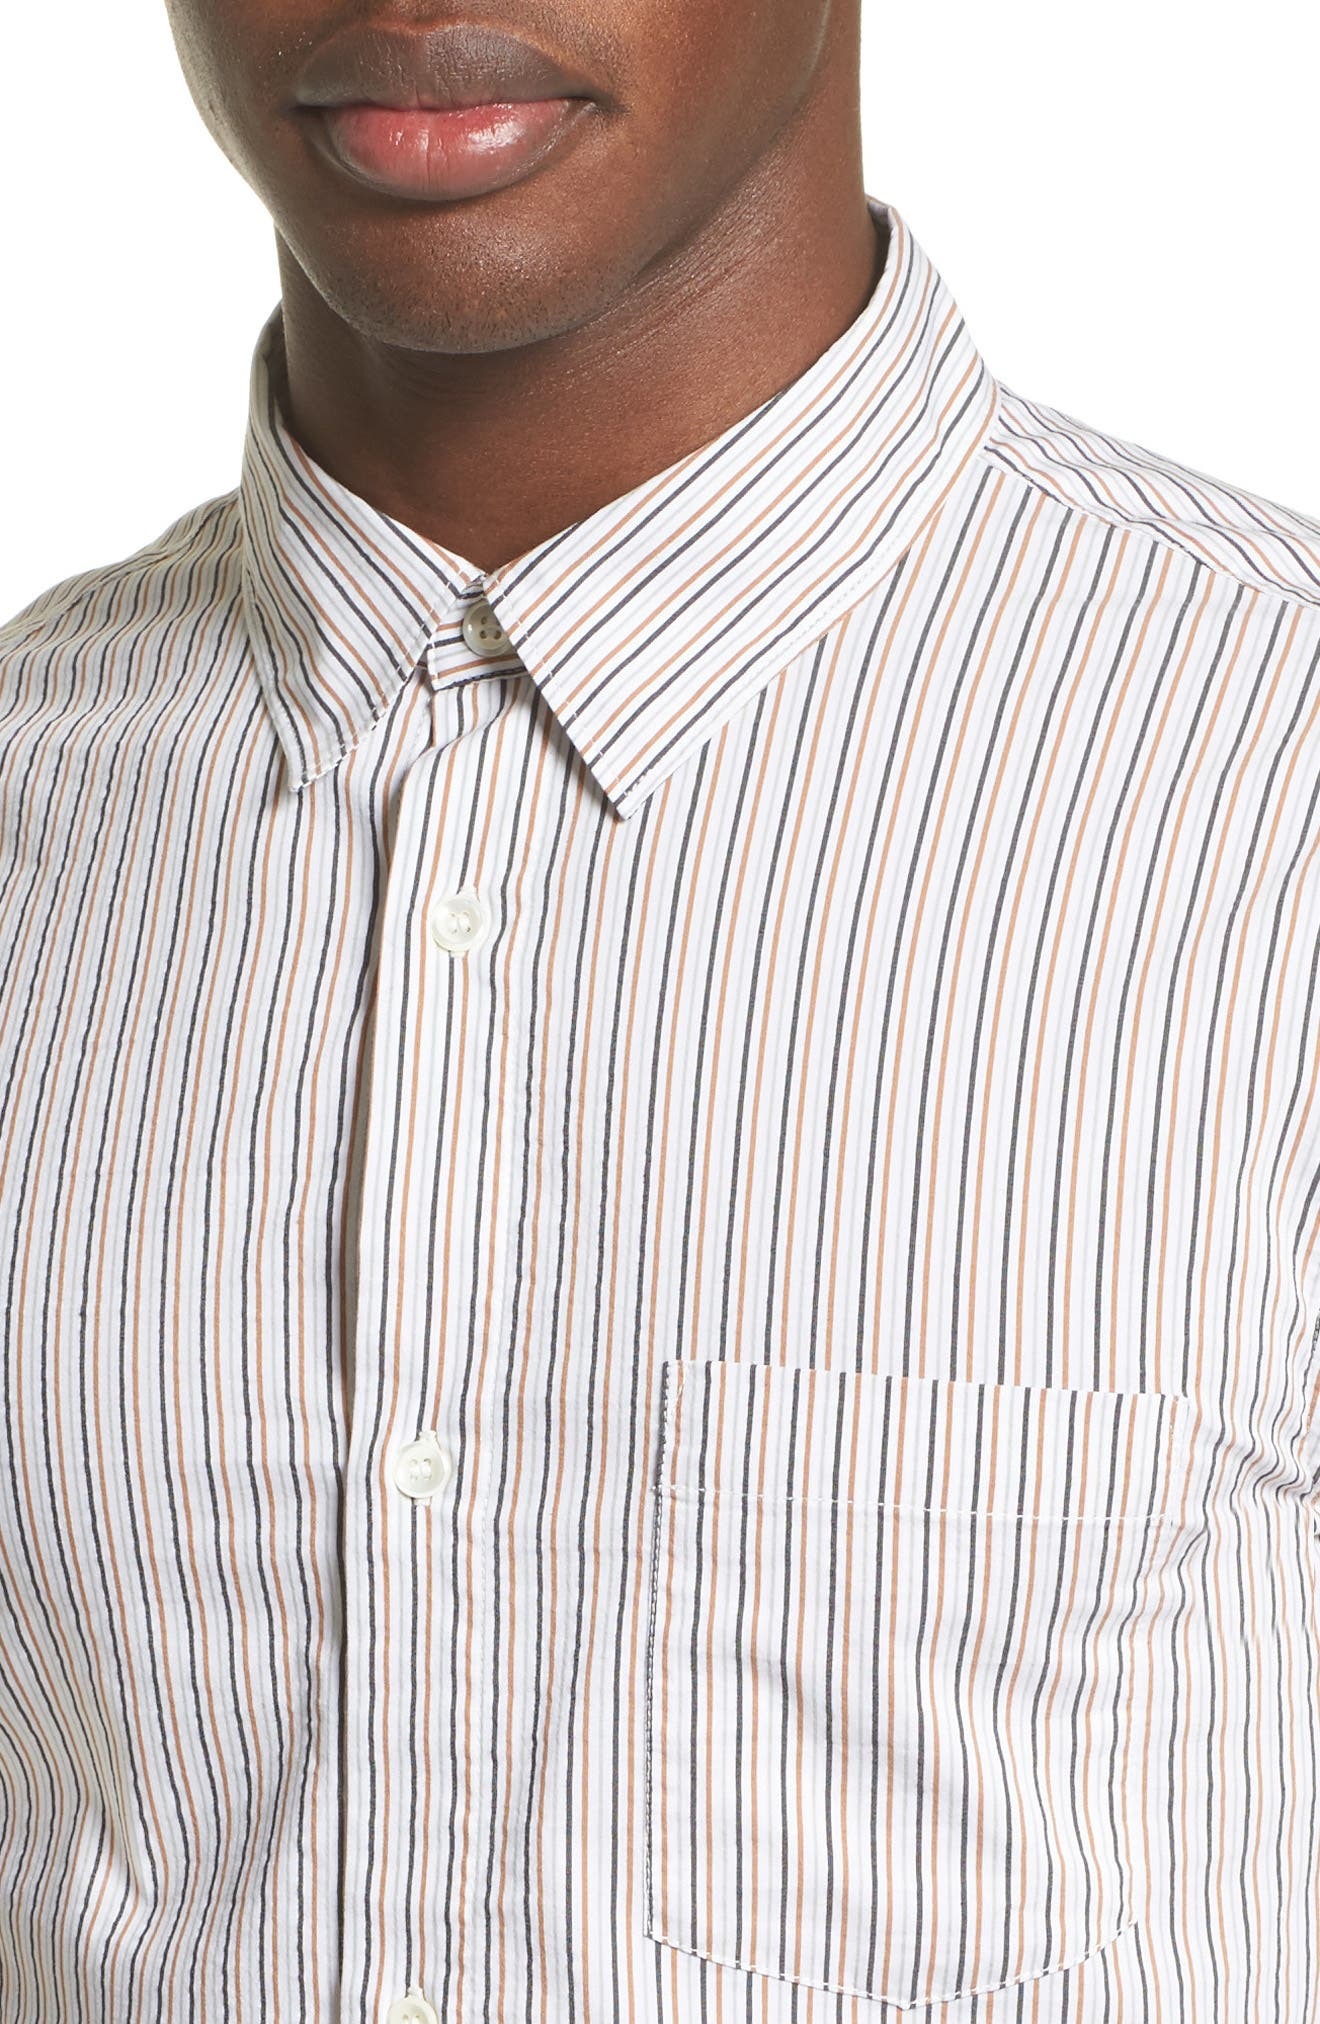 Franklin Extra Trim Fit Stripe Sport Shirt,                             Alternate thumbnail 4, color,                             Blanc